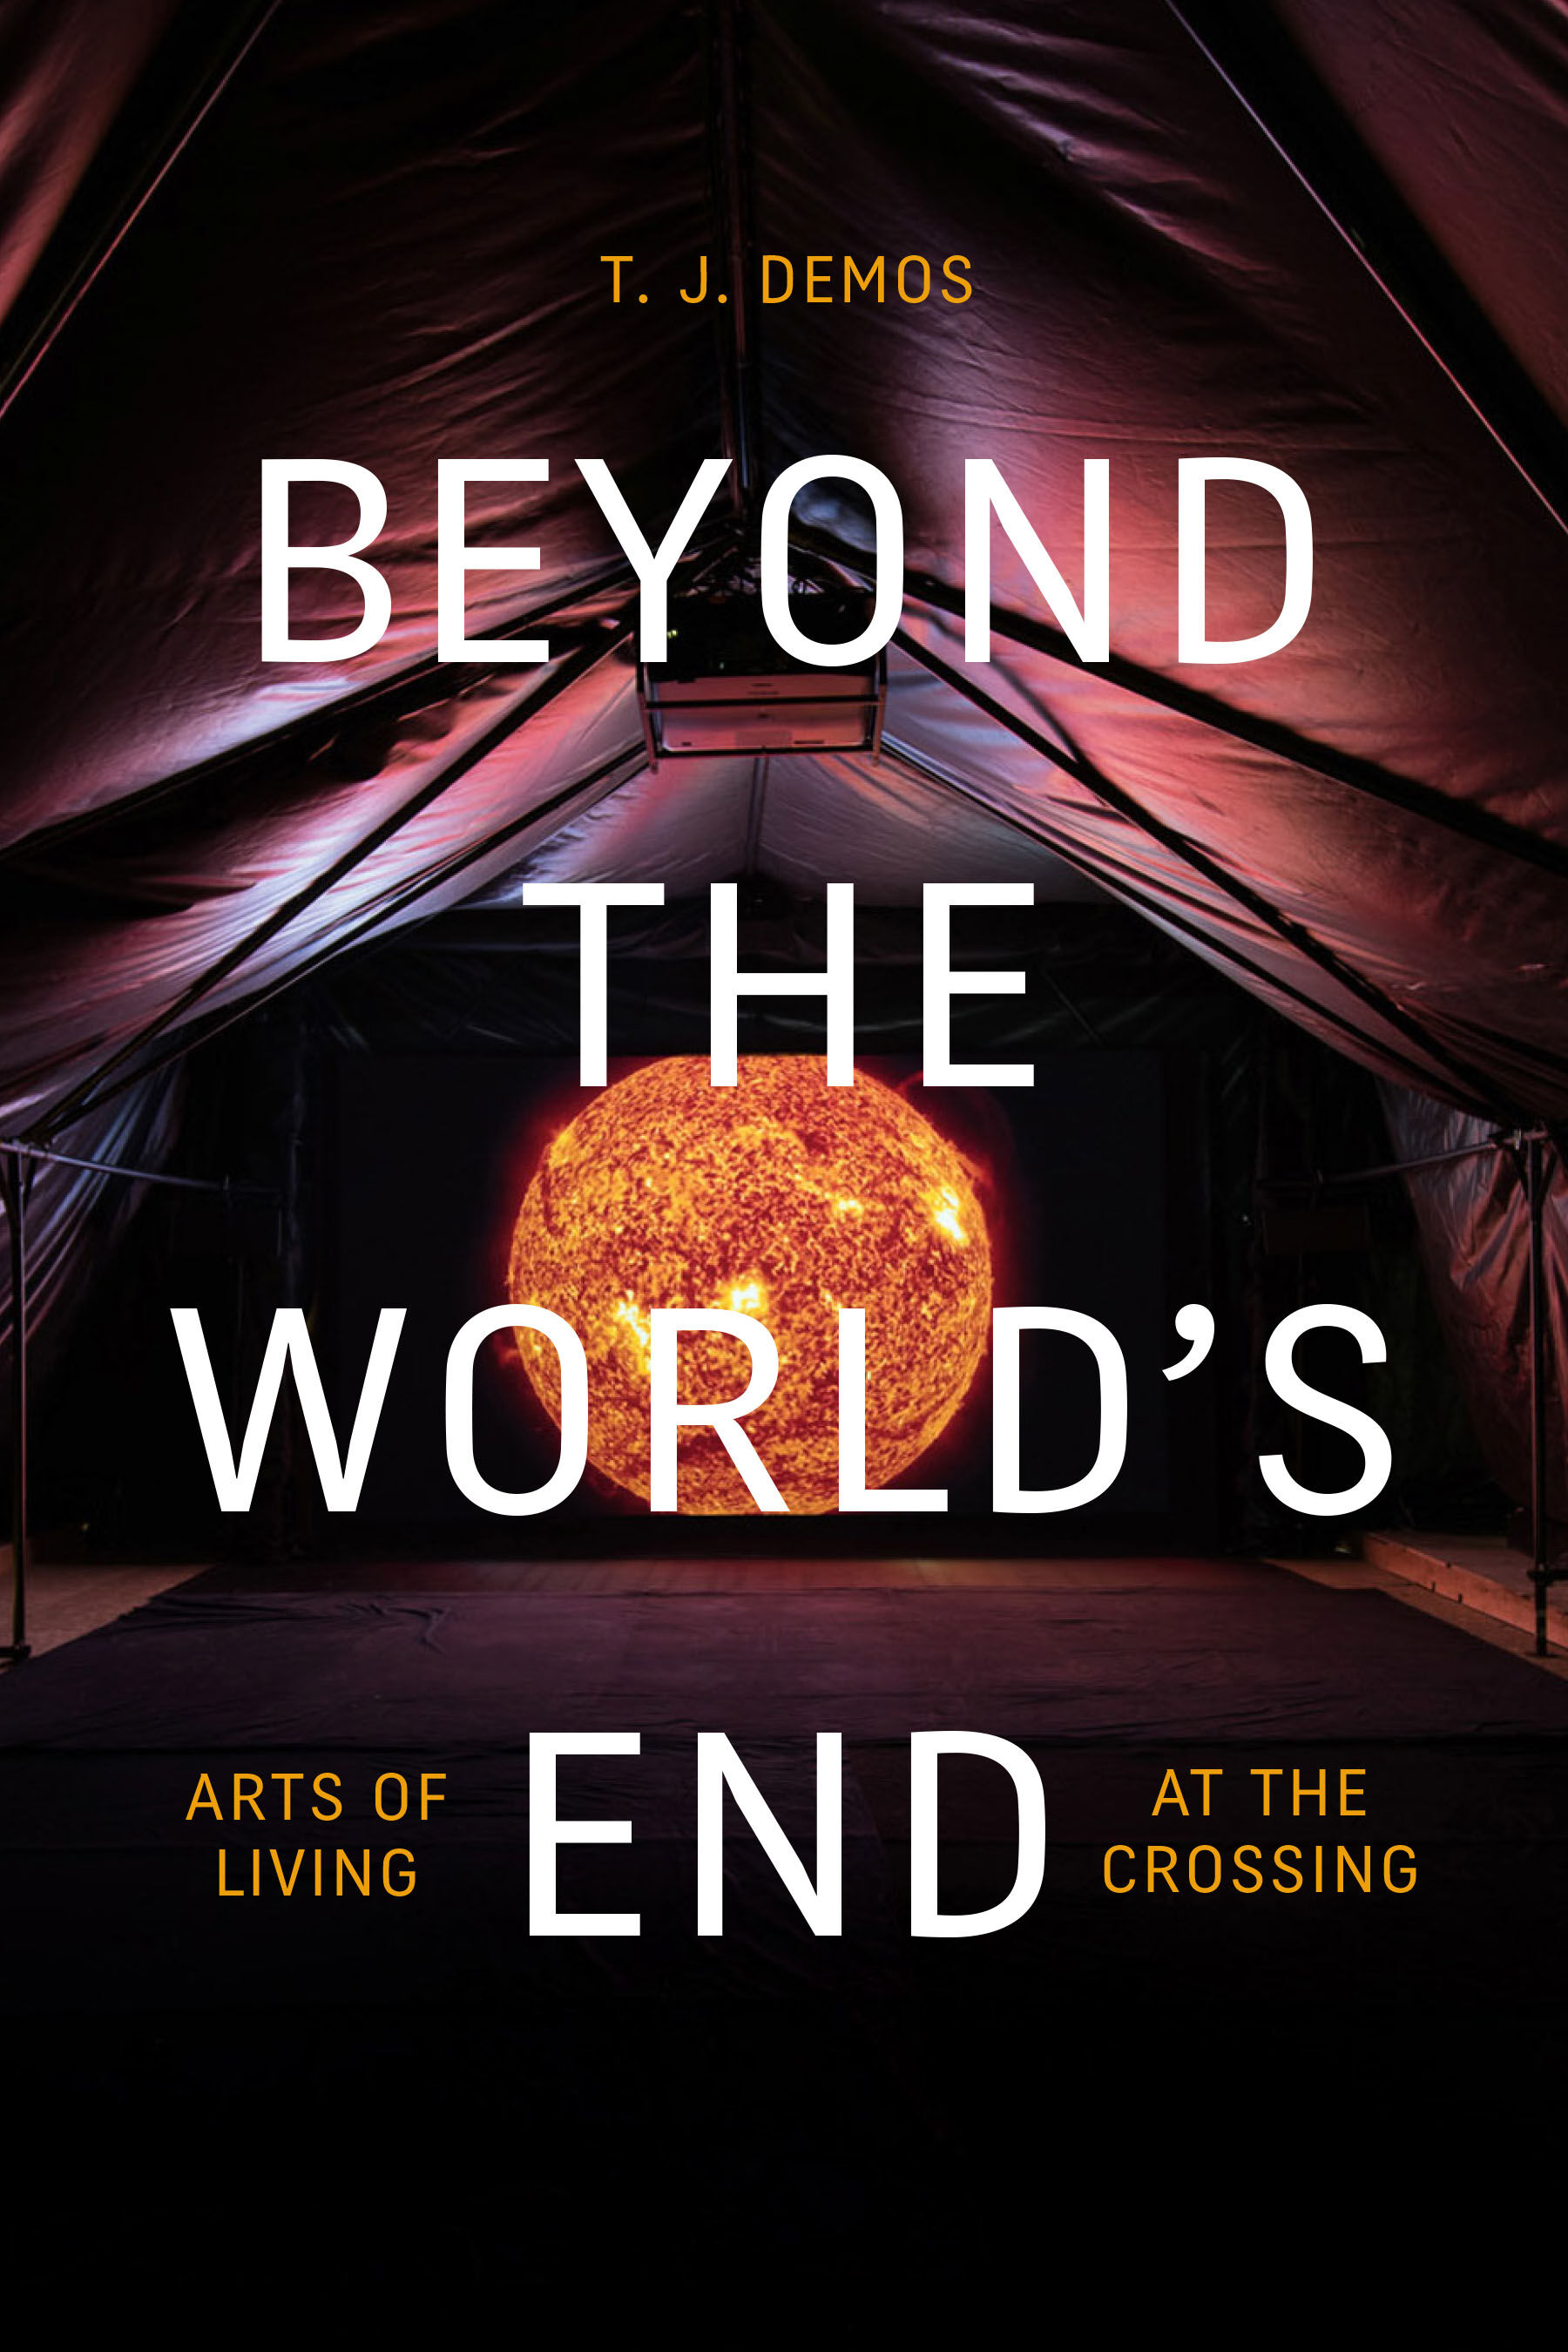 Book review. Demos TJ (2020). Beyond the World's End: Arts of Living at the Crossing